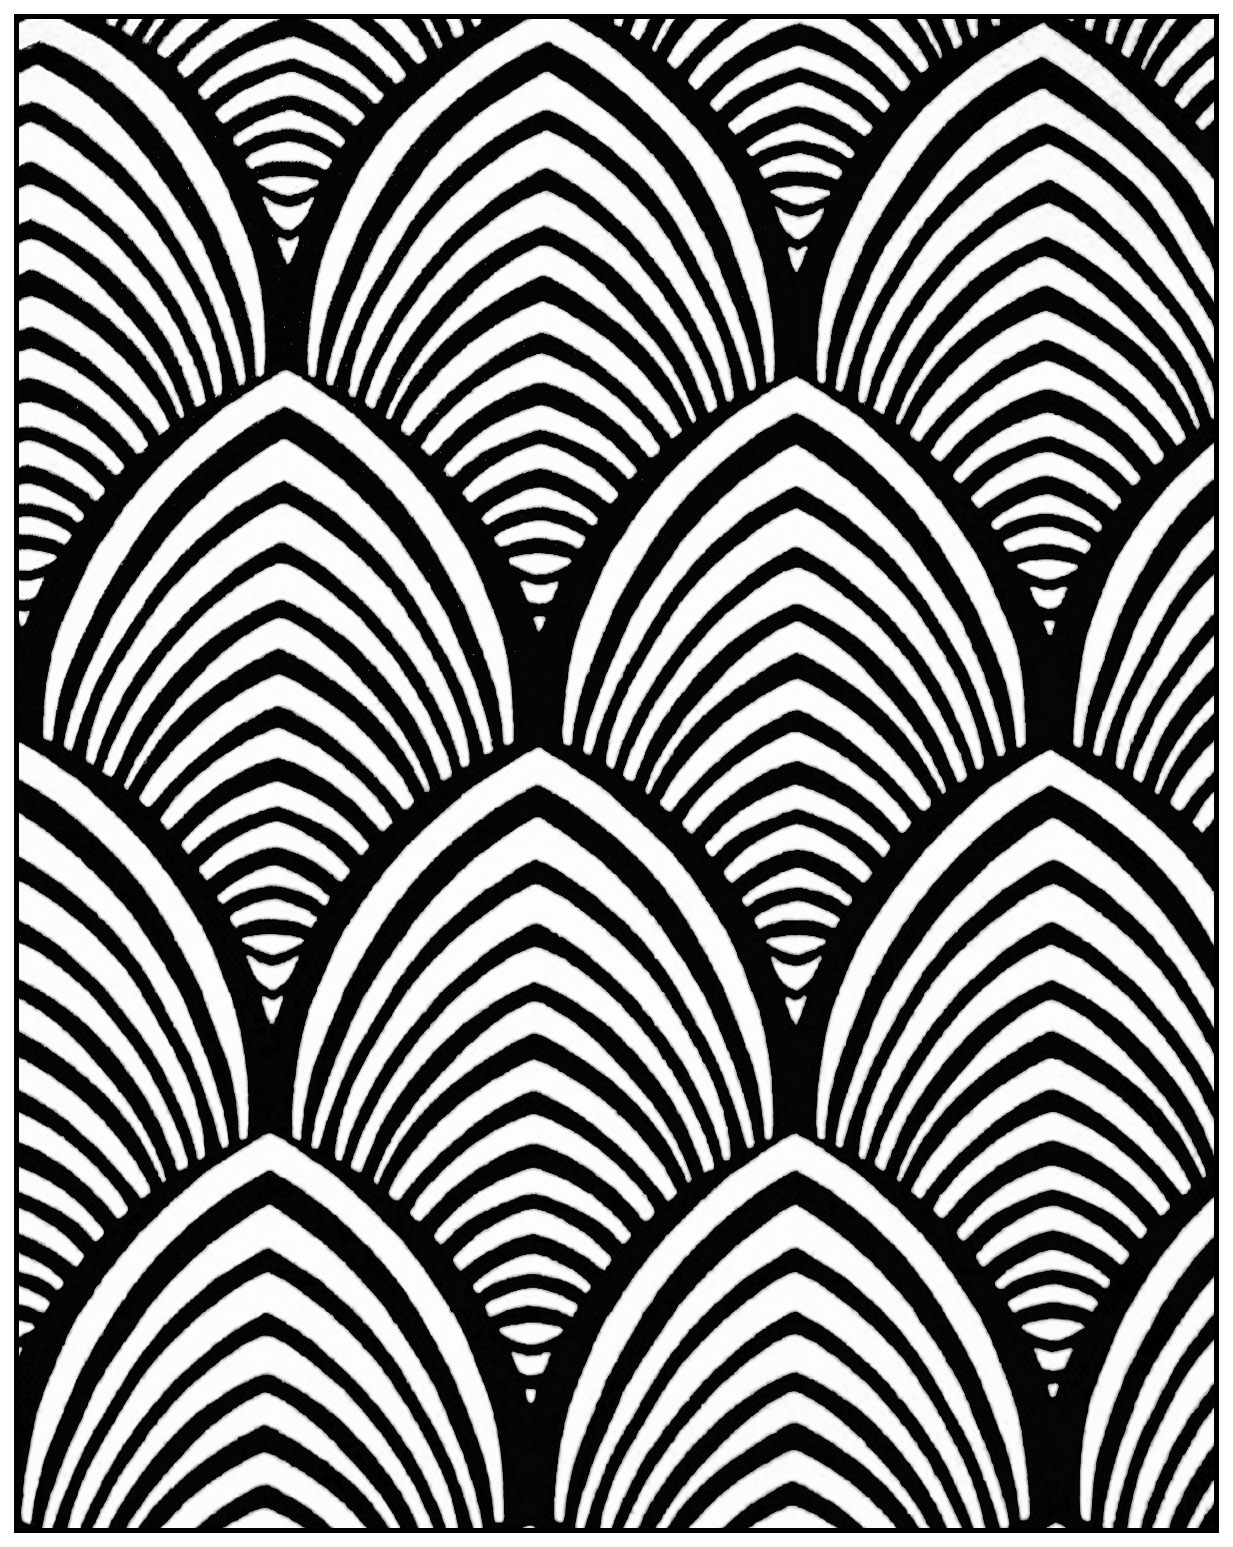 Geometric patterns art deco 4 art deco adult coloring pages for Art deco patterns